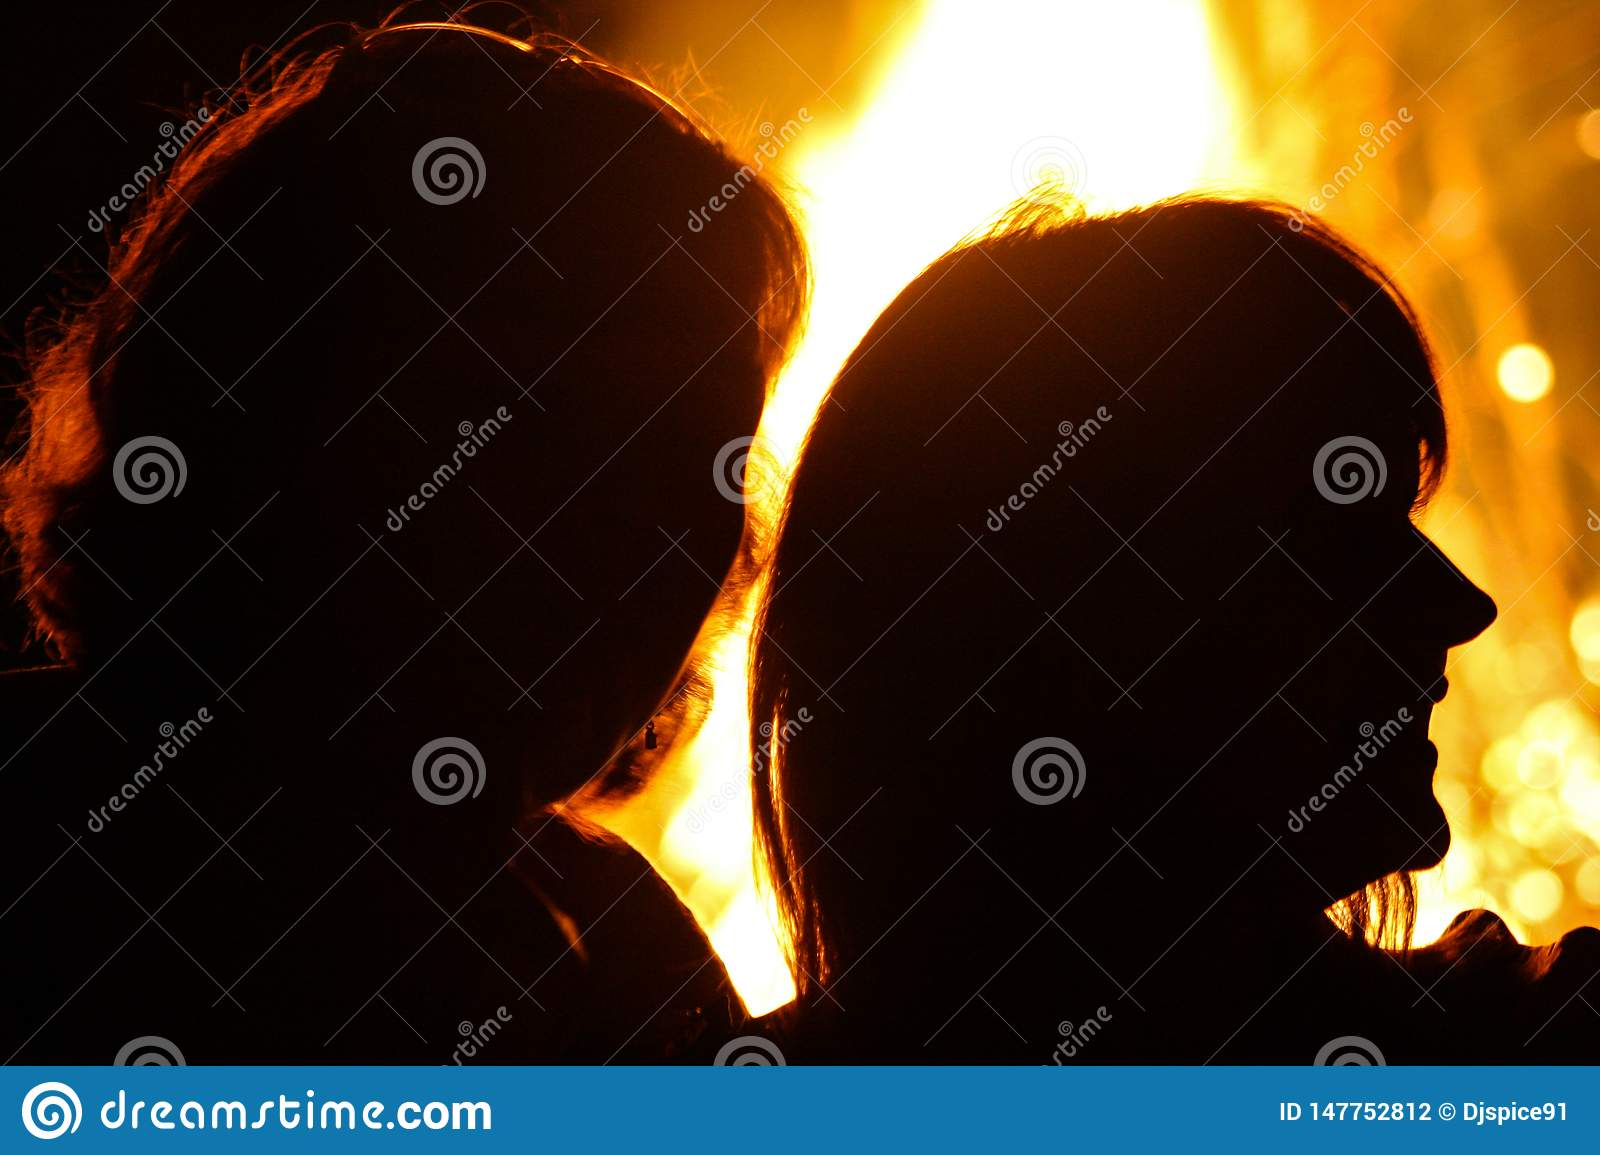 Silhouettes of people on a fire background